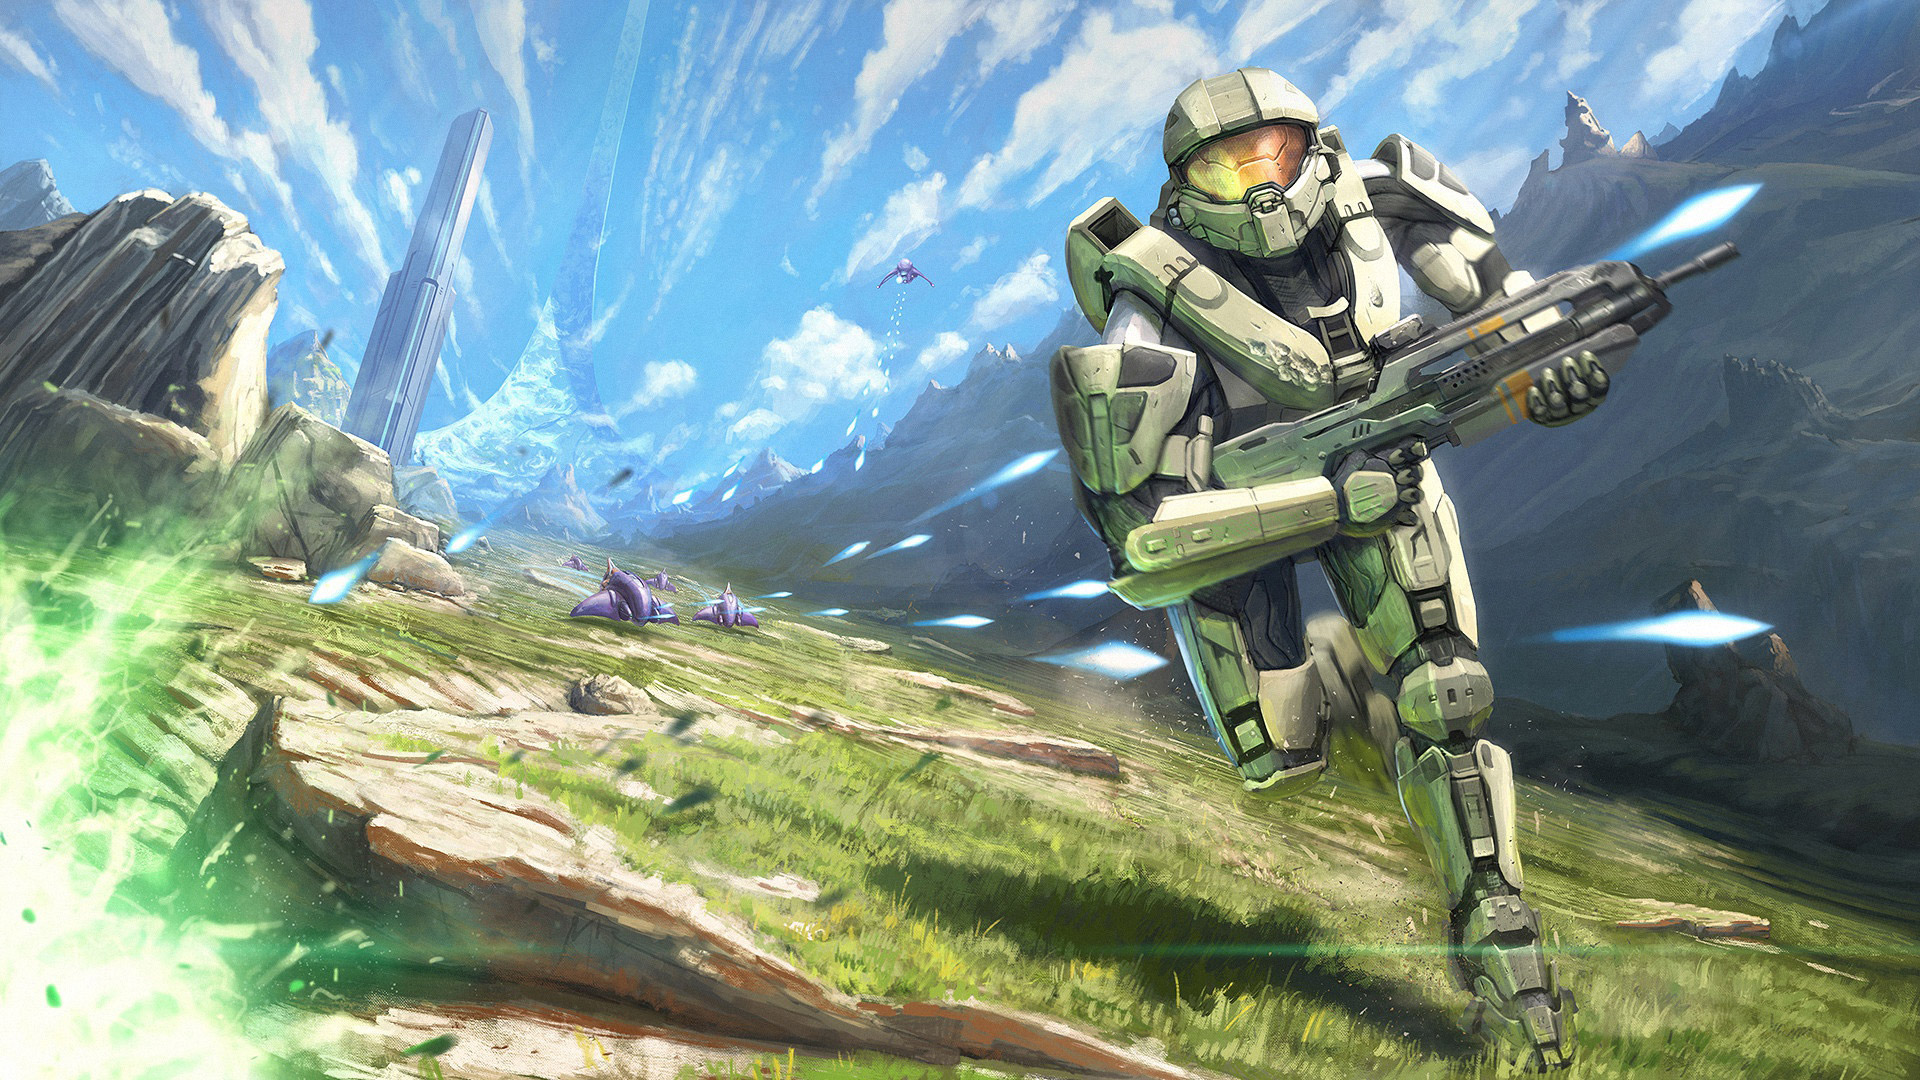 Free Halo Wallpaper in 1920x1080